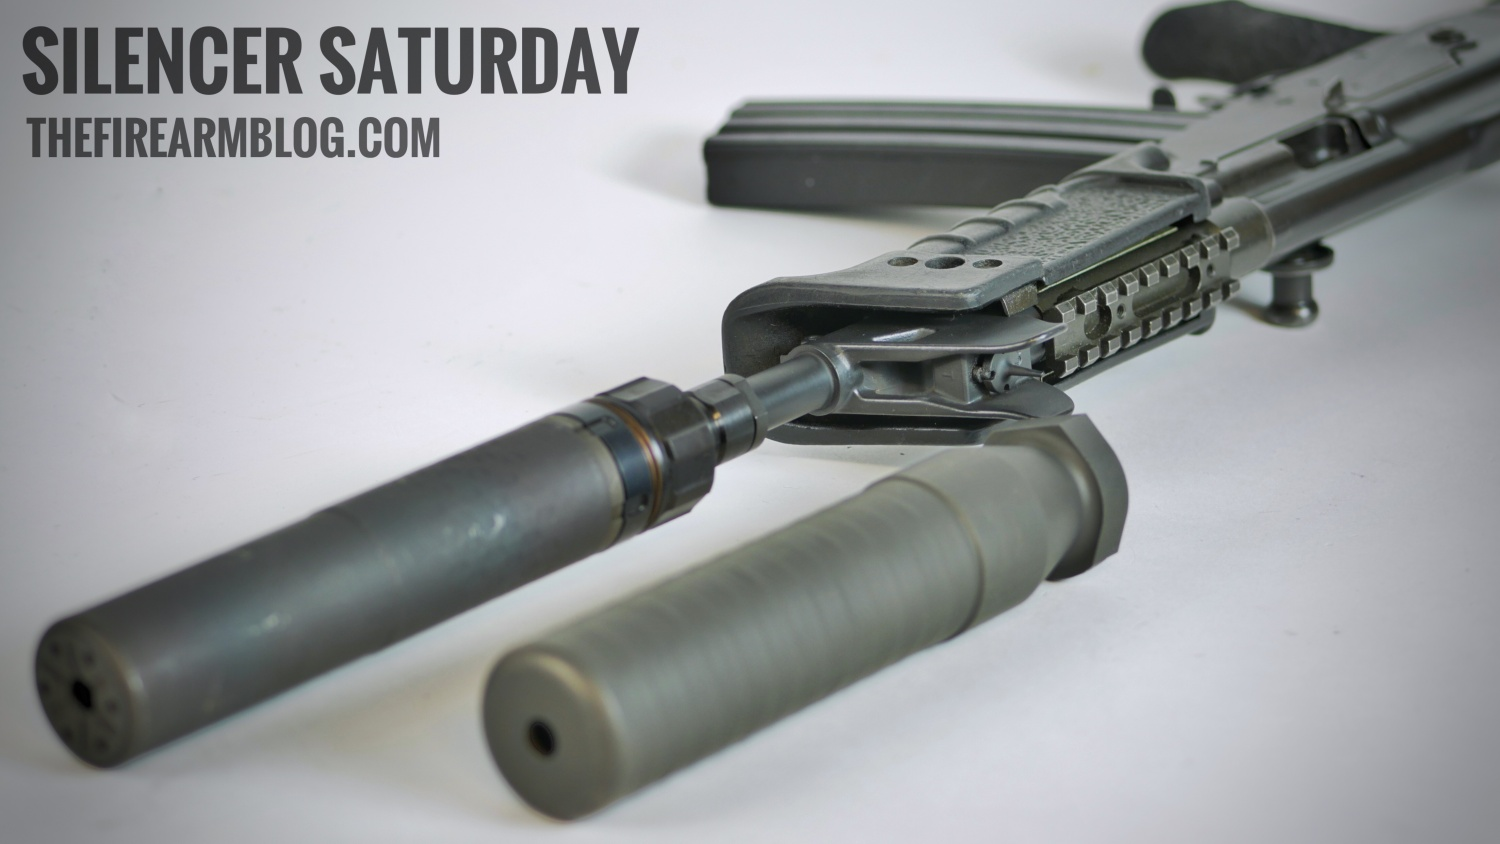 Silencer Saturday 9 Demystifying The Nfa Buying Process The Firearm Blog